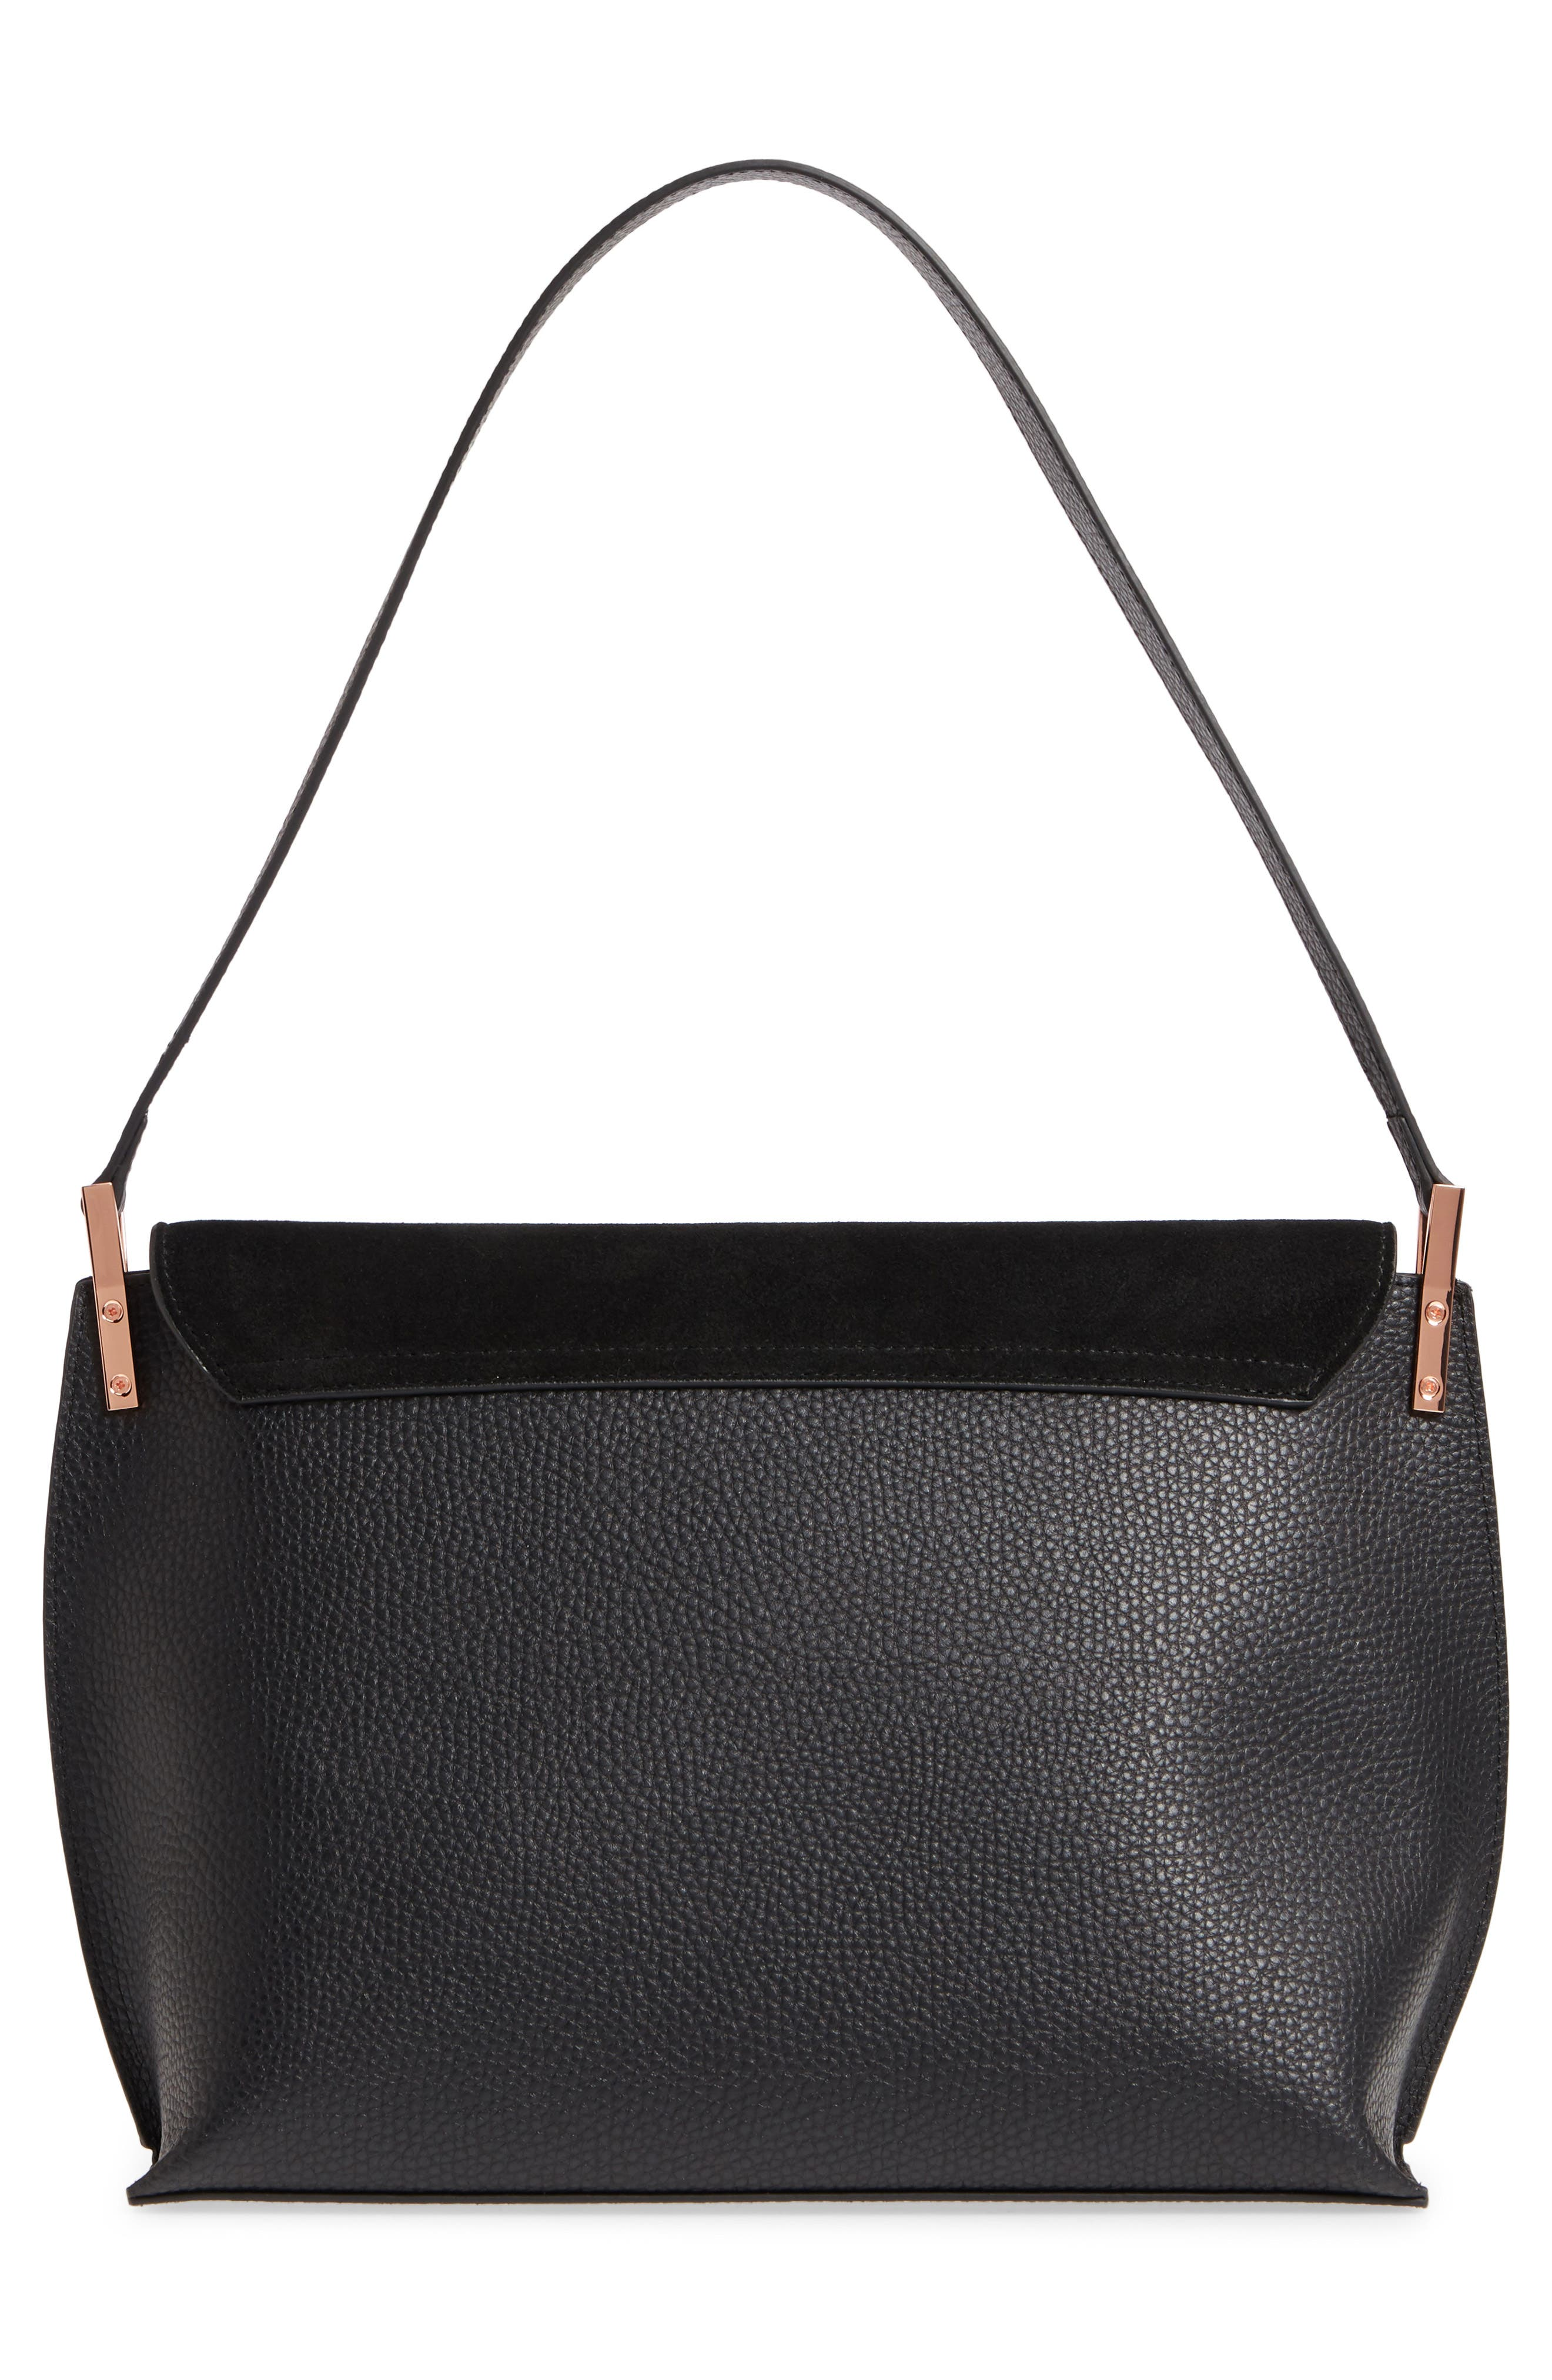 Katlynn Suede & Leather Shoulder Bag,                             Alternate thumbnail 3, color,                             BLACK